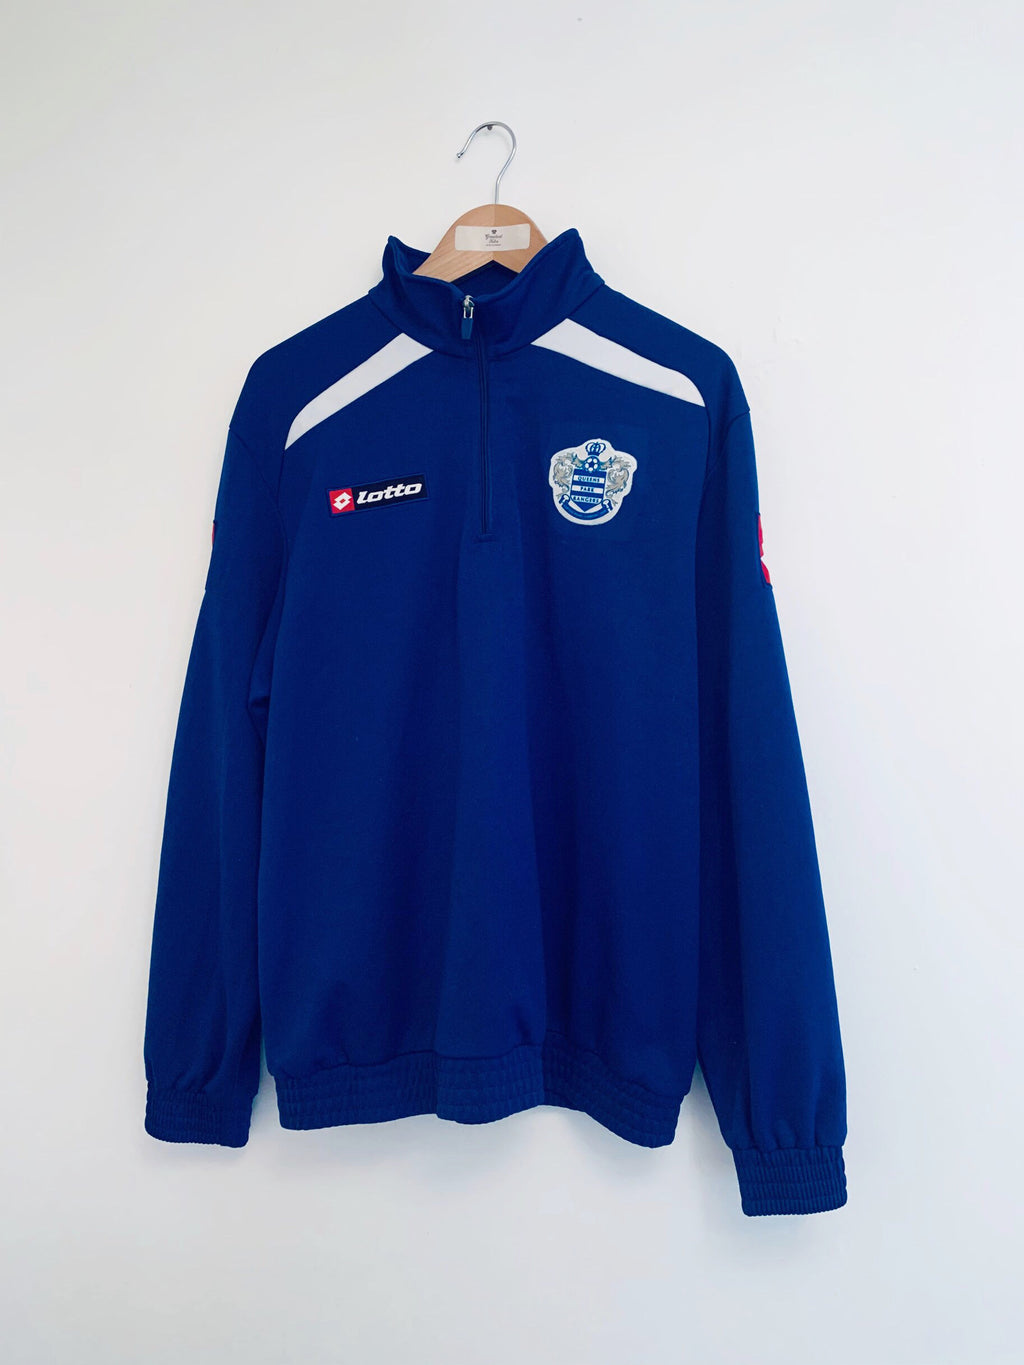 2008/09 QPR 1/4 Zip Training Top (L) 9/10